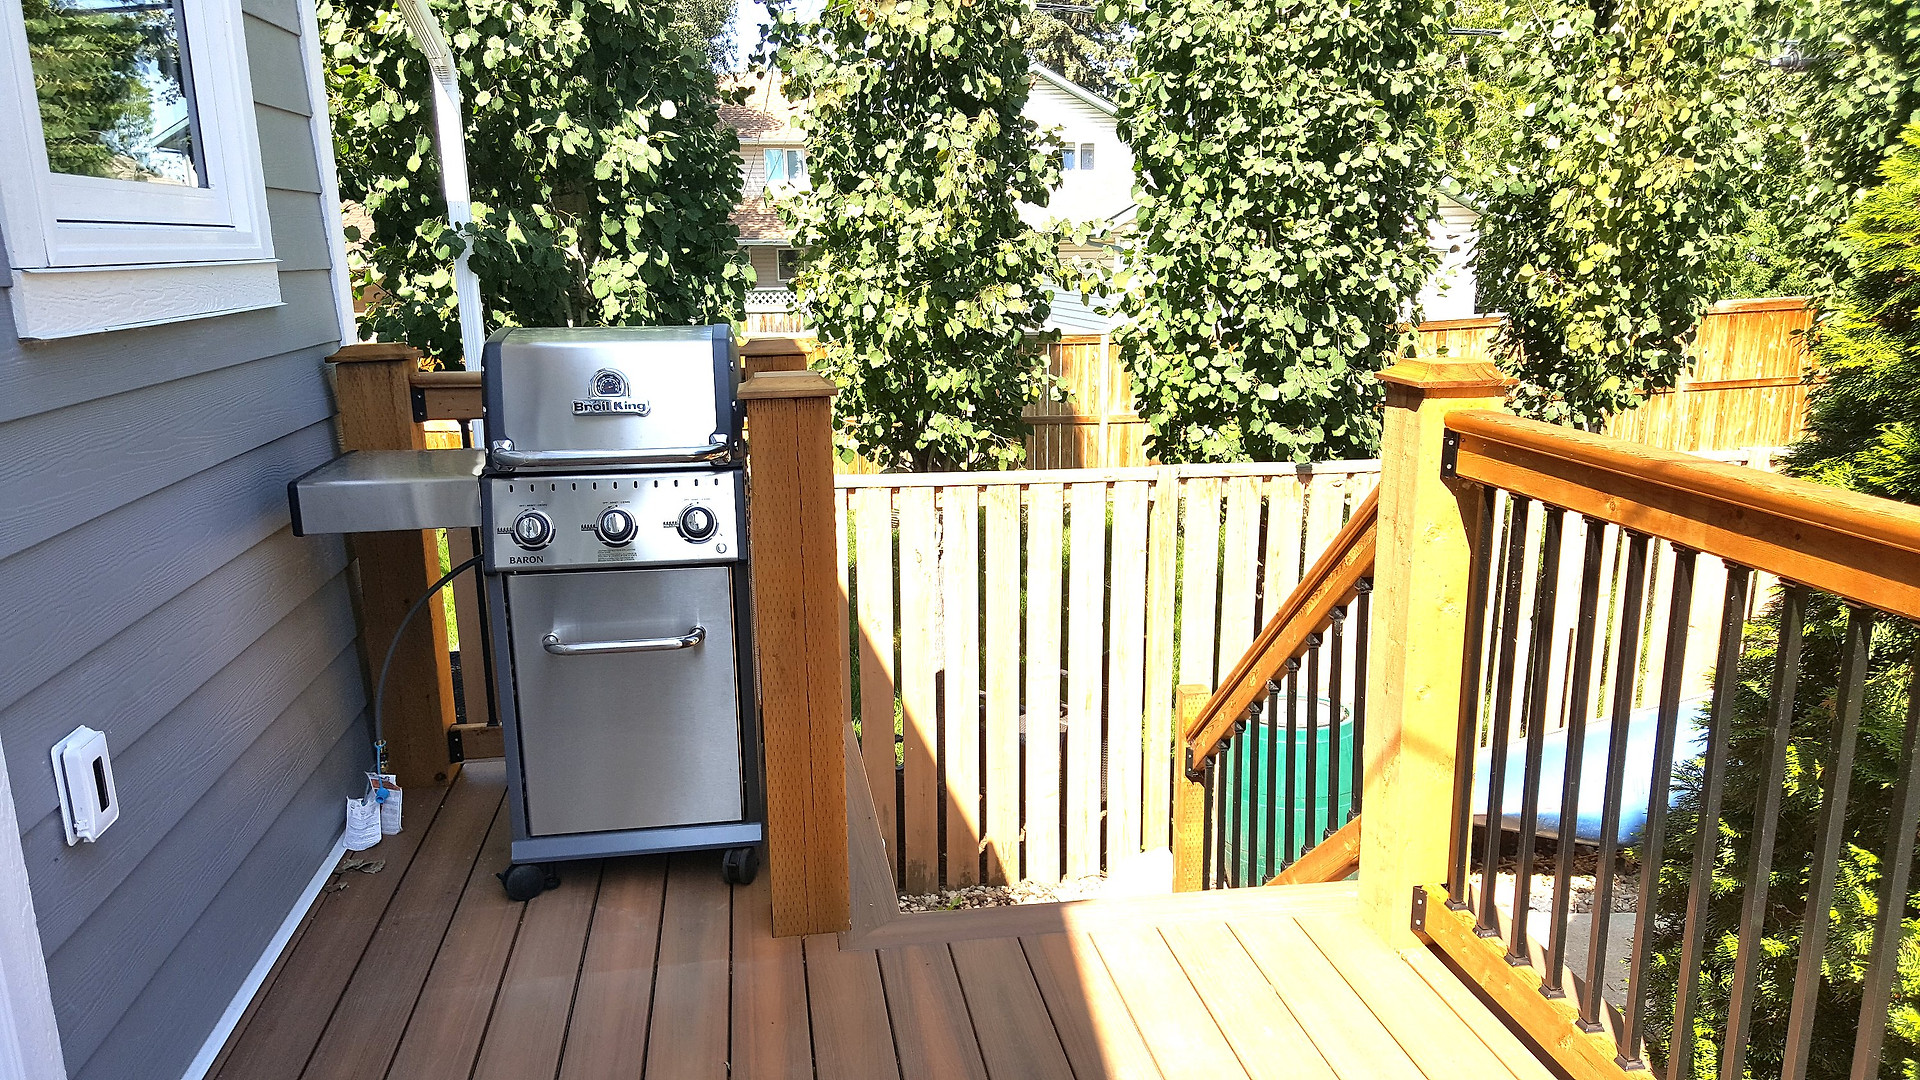 Barbacue on Back Deck